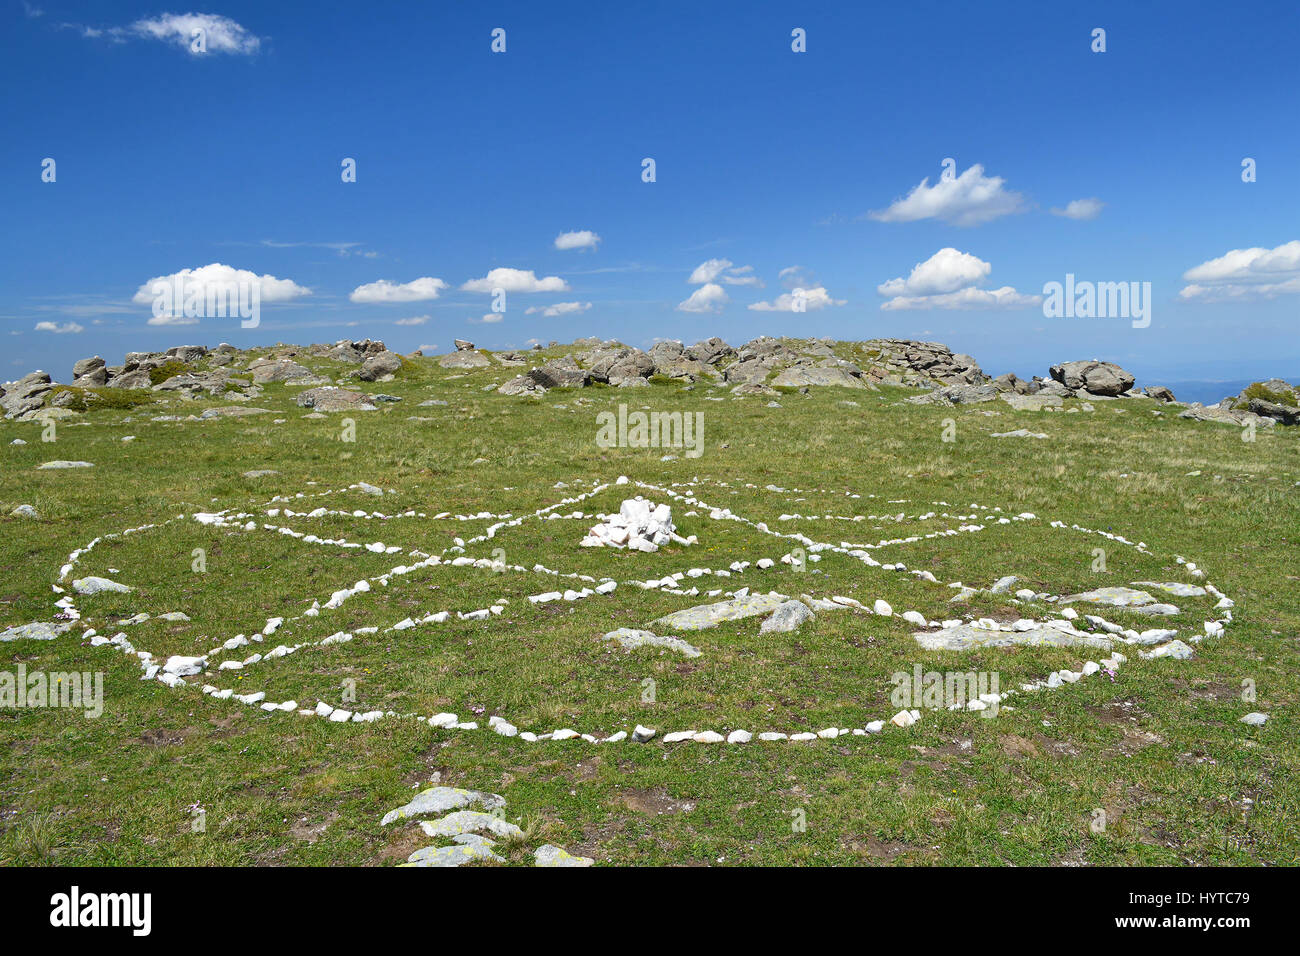 Drawn by white stones on the green grass circle with pentagram in it - the spiritual symbol of The White Brotherhood, - Stock Image